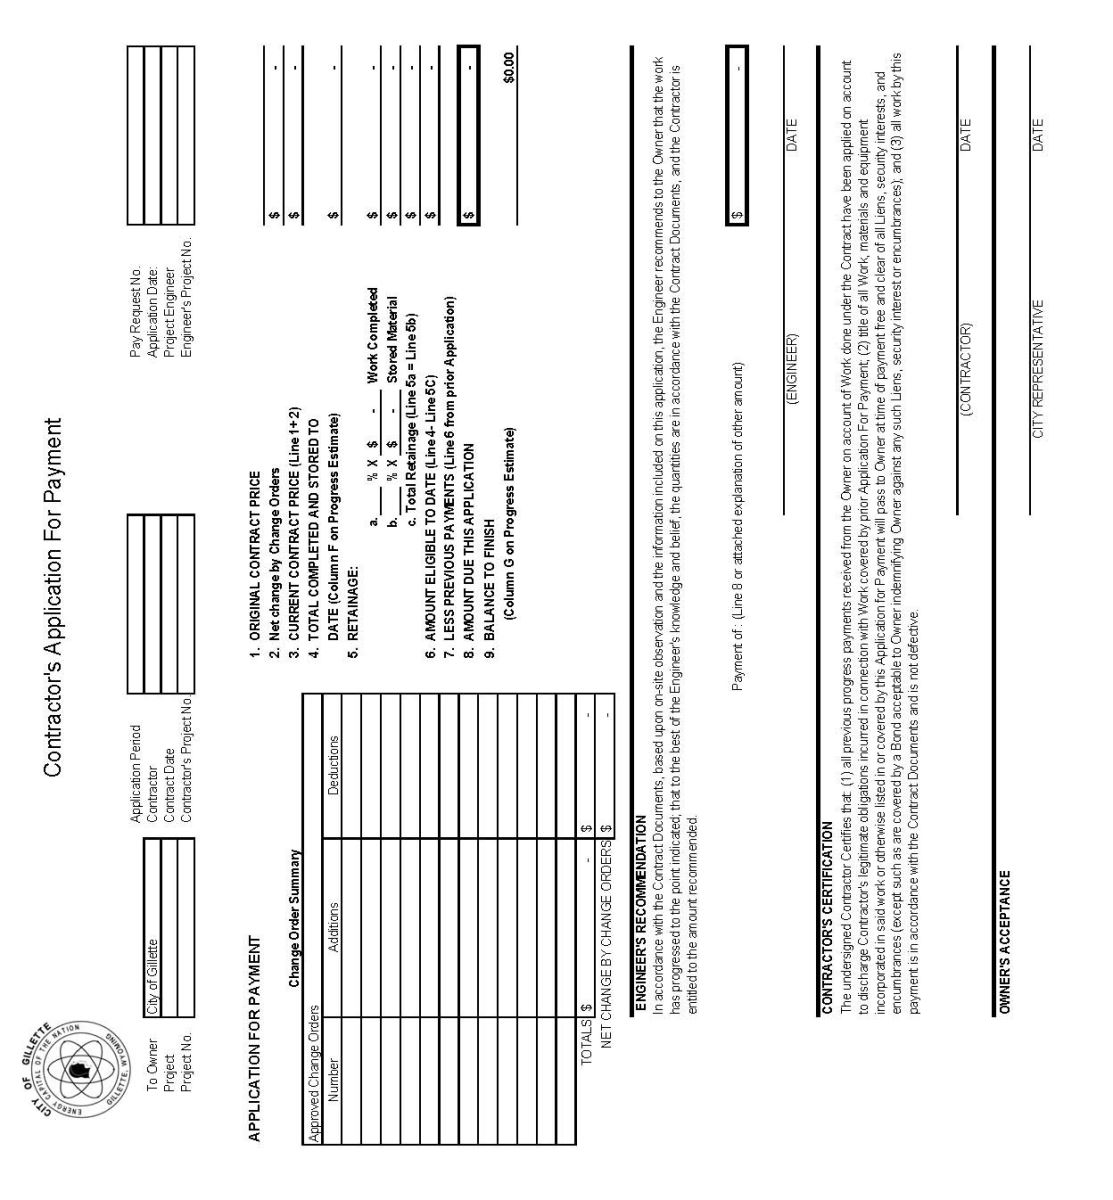 Standard Construction Specifications Document Viewer